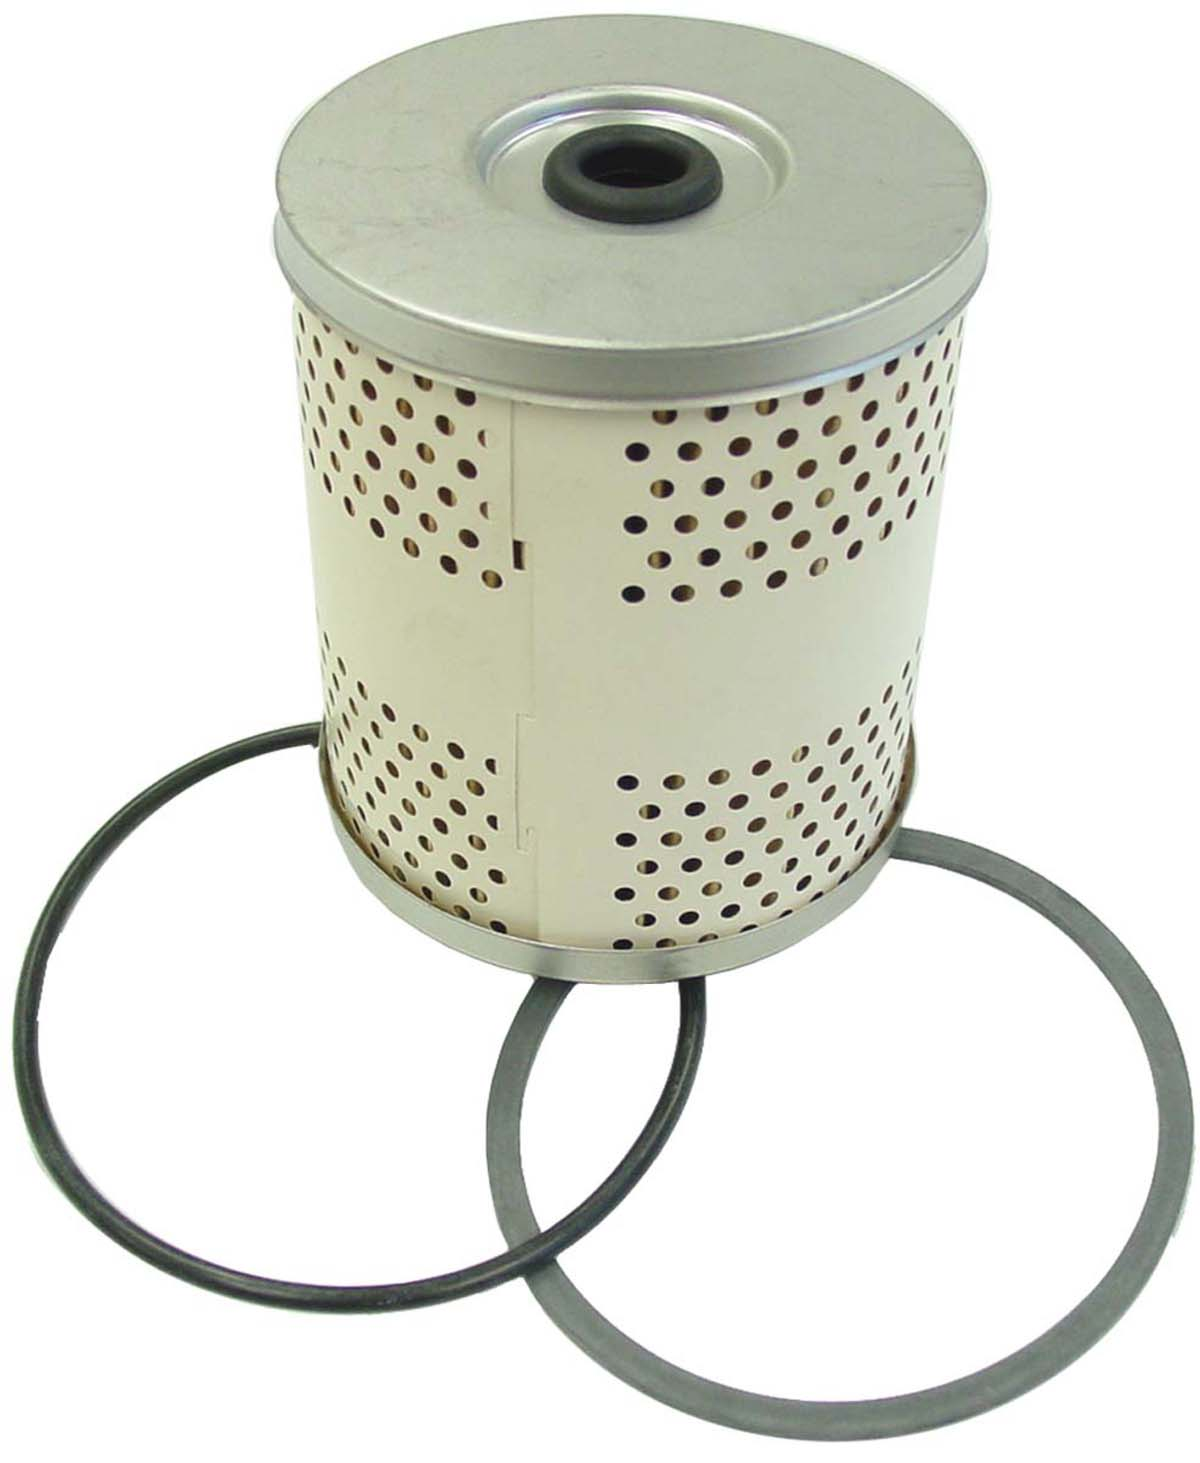 abc045 - oil filter and gasket for ford 8n 9n and 2n ... 8n ford fuel filter ford fuel filter replacement #8